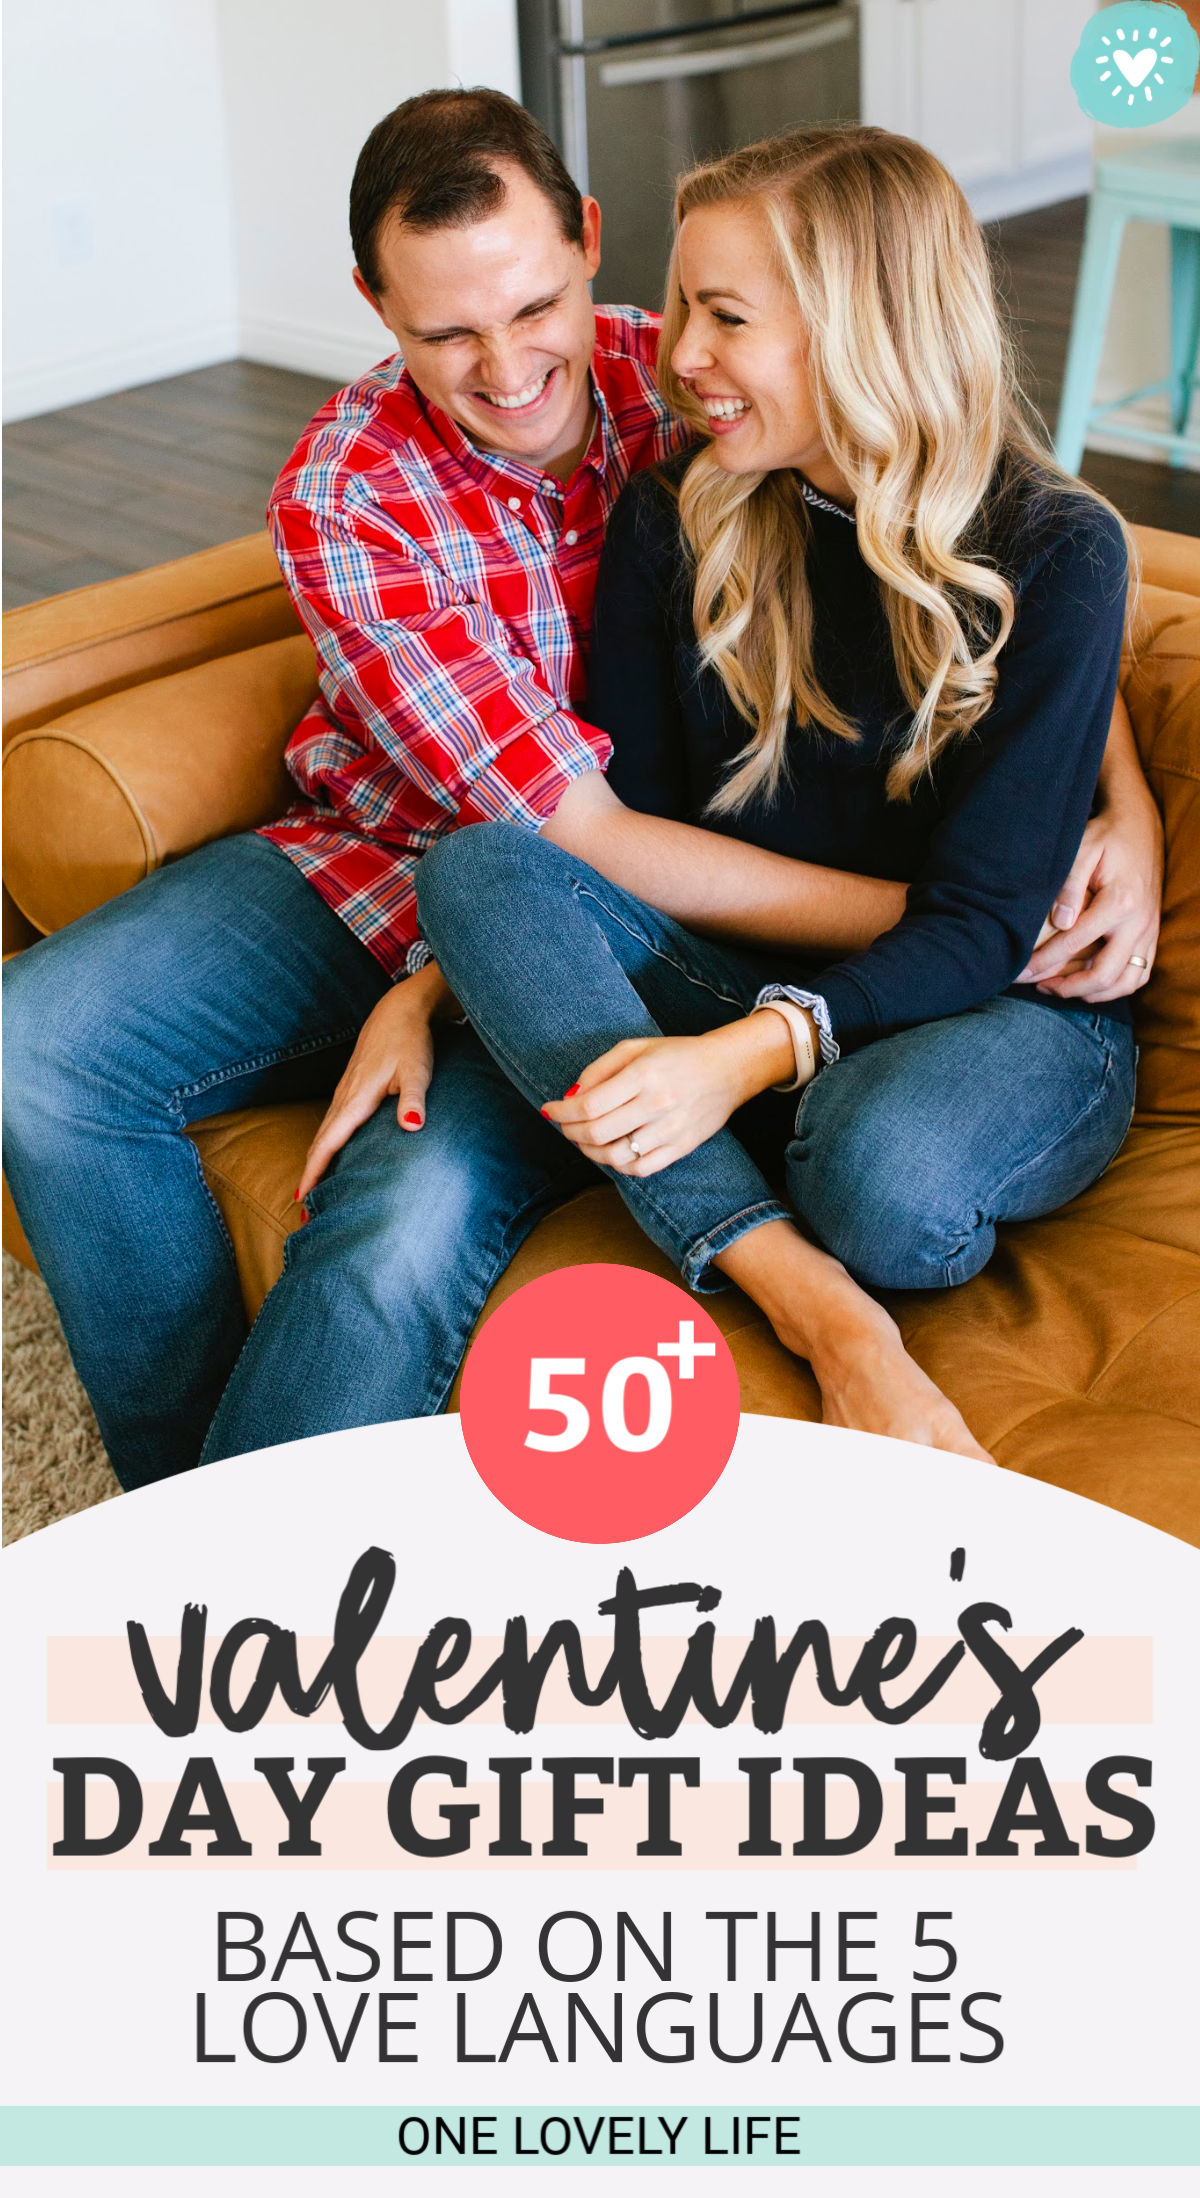 14 Days of Valentine's (Based on the 5 Love Languages) from One Lovely Life